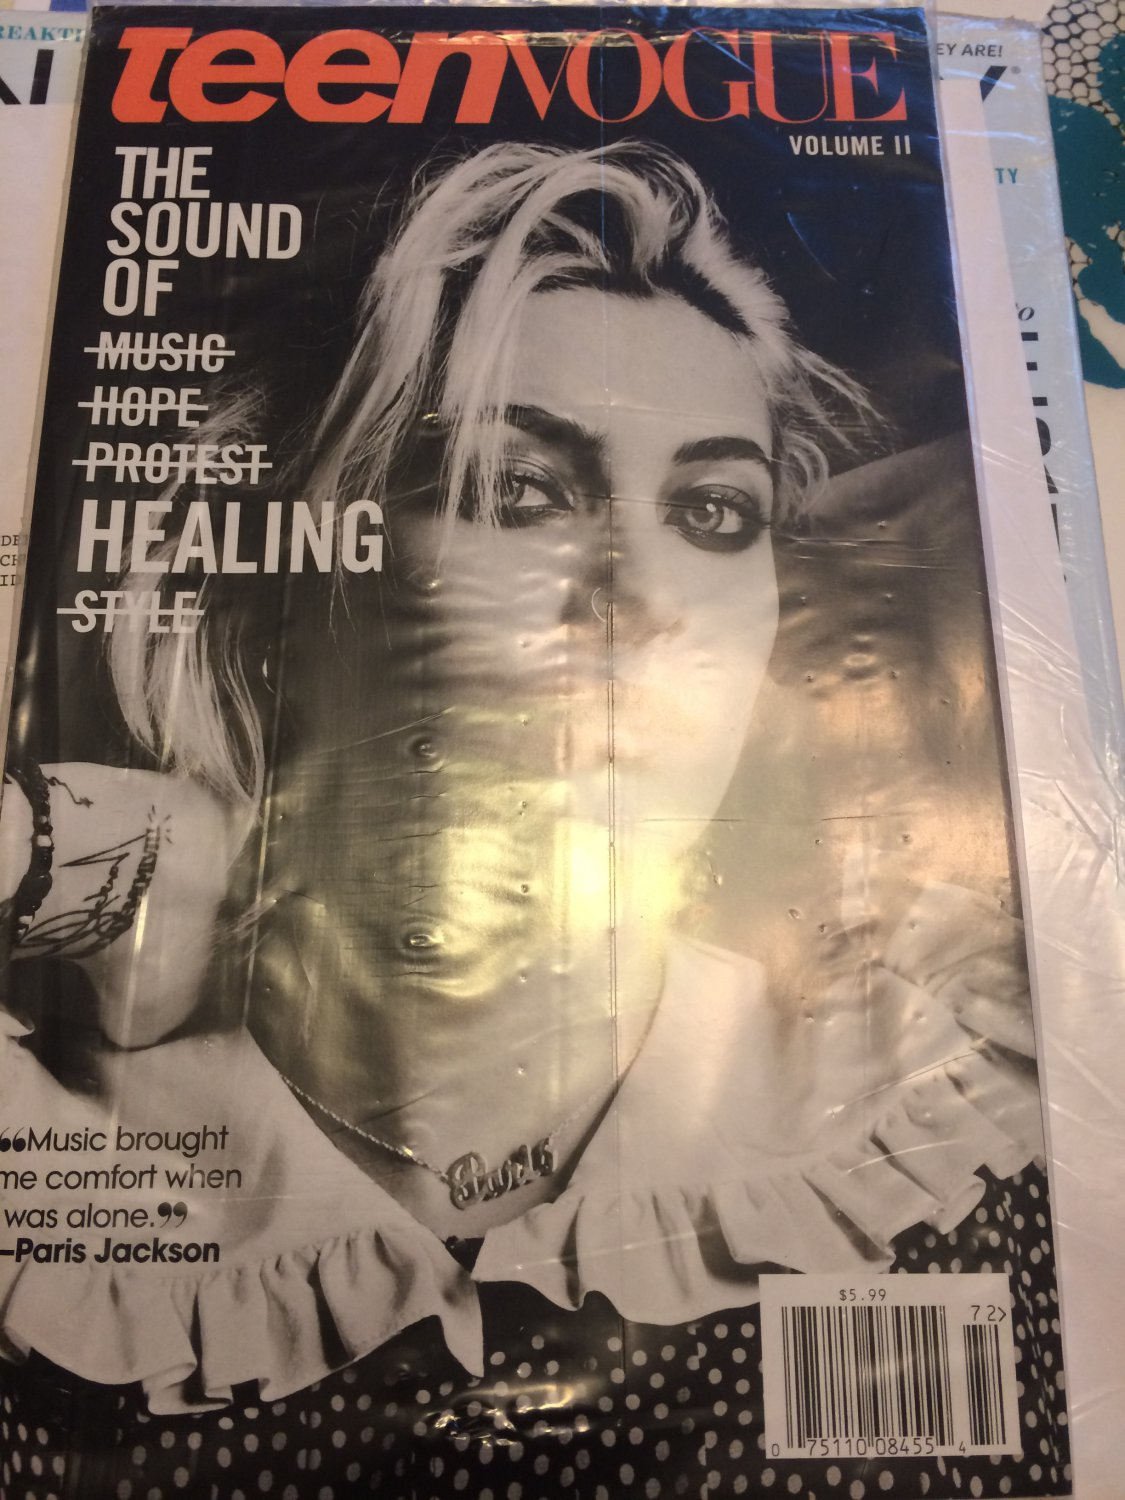 Teen Vogue Volume II Paris Jackson - The Sound of Healing